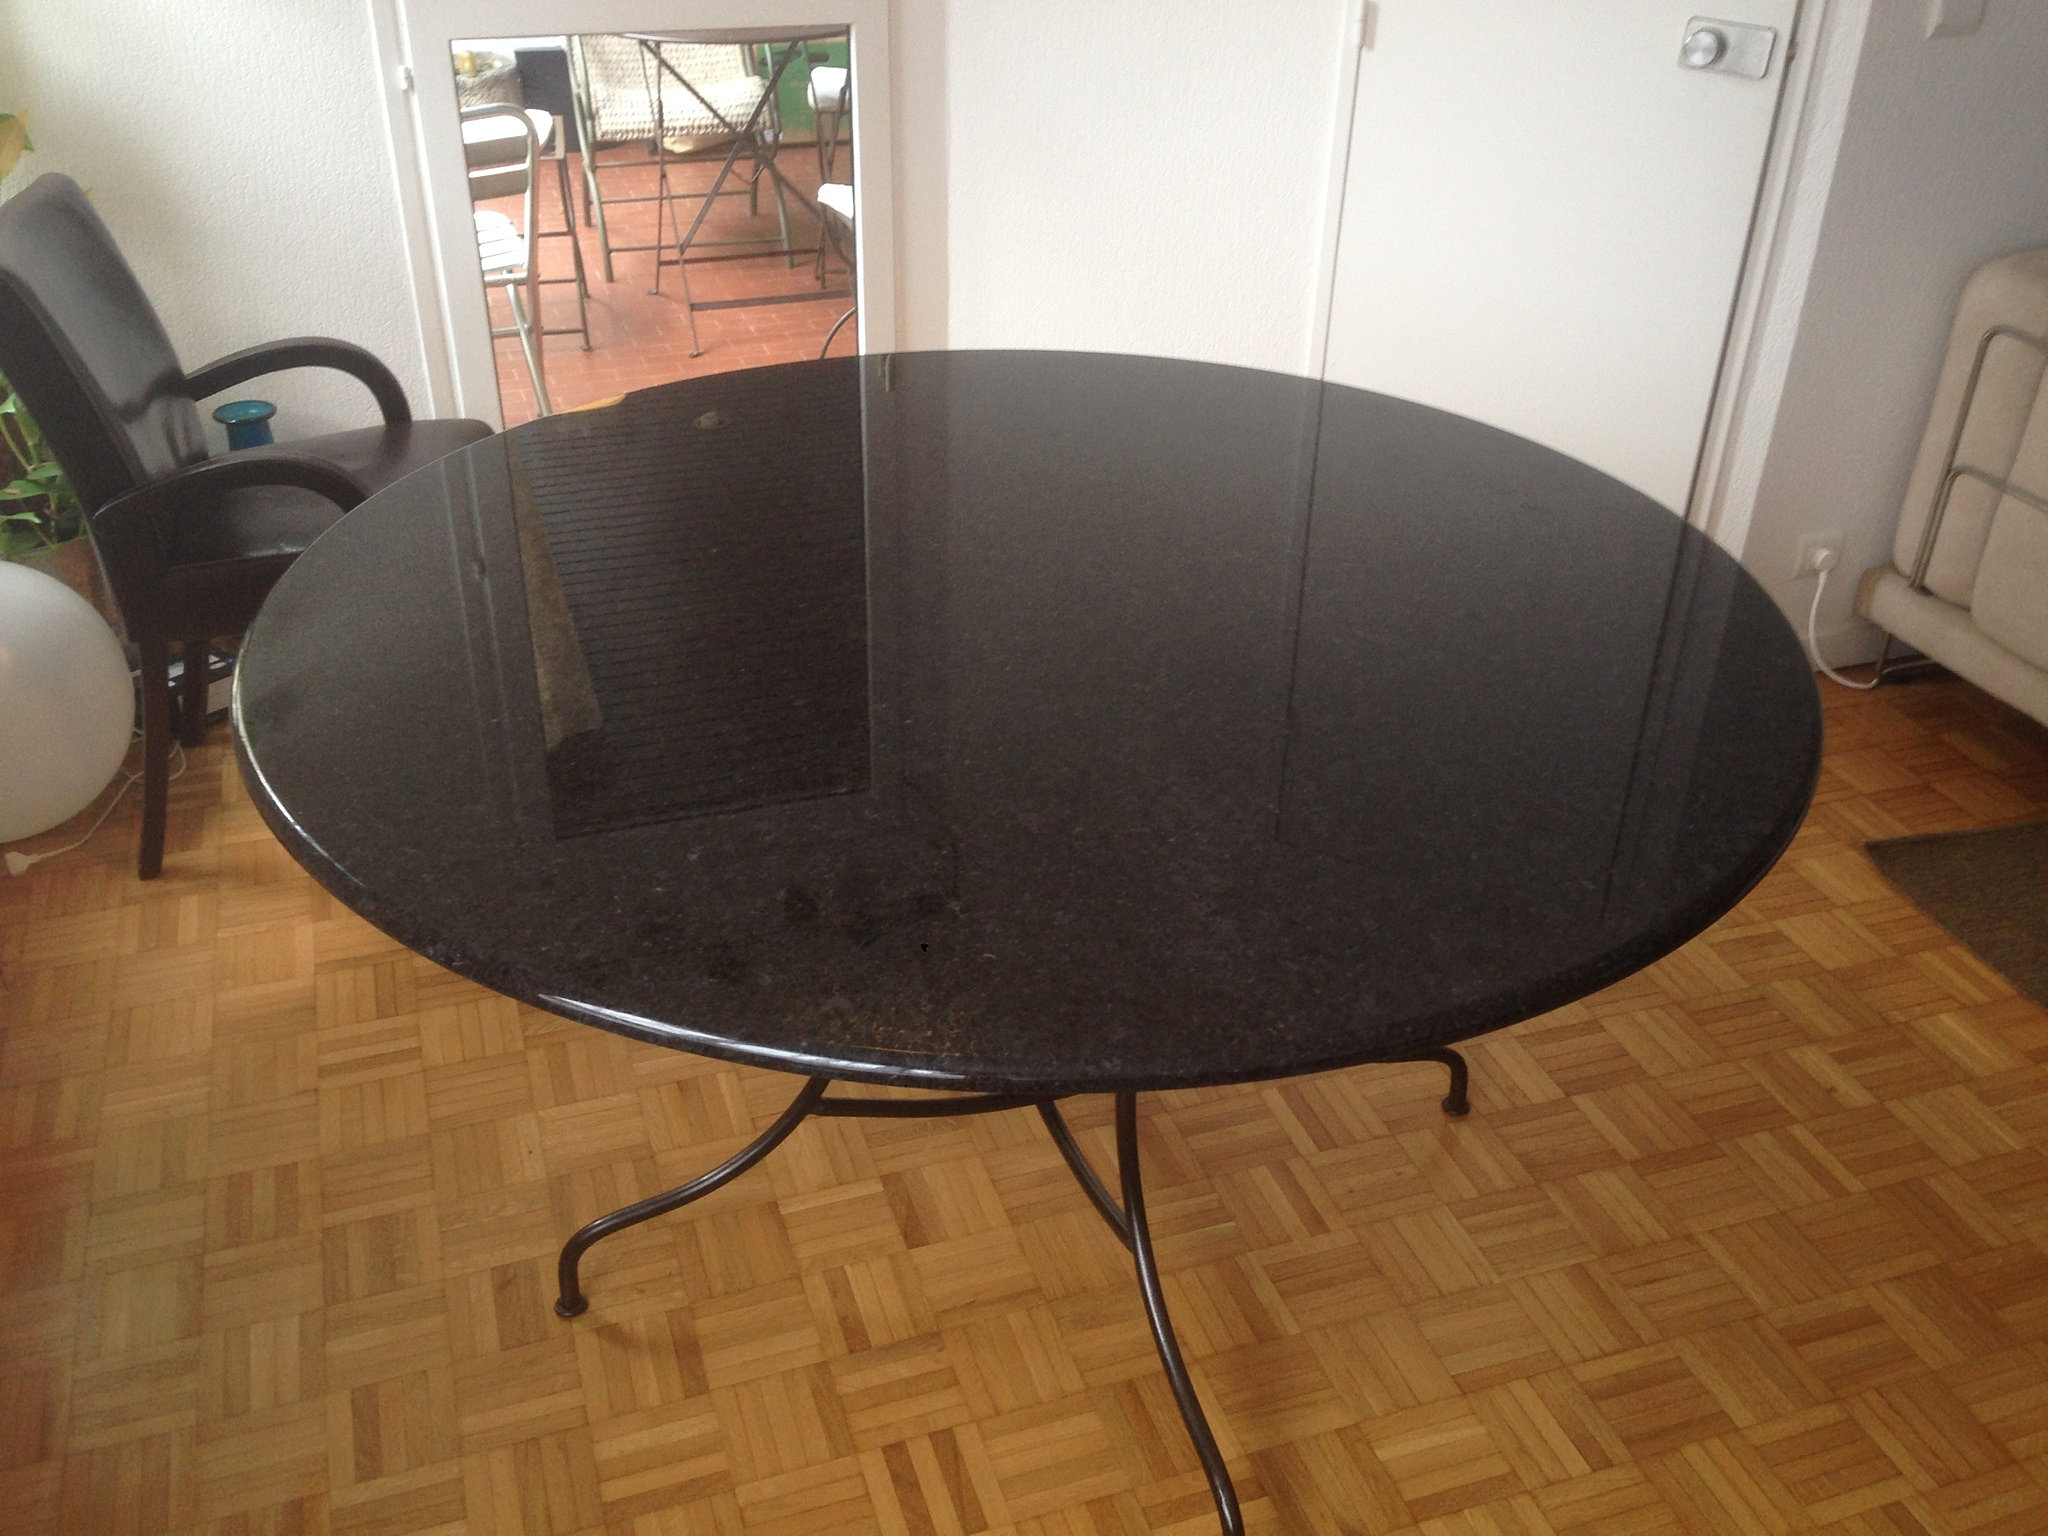 Table En Quartz Plan De Travail Granit Quartz Table En Mabre Paris